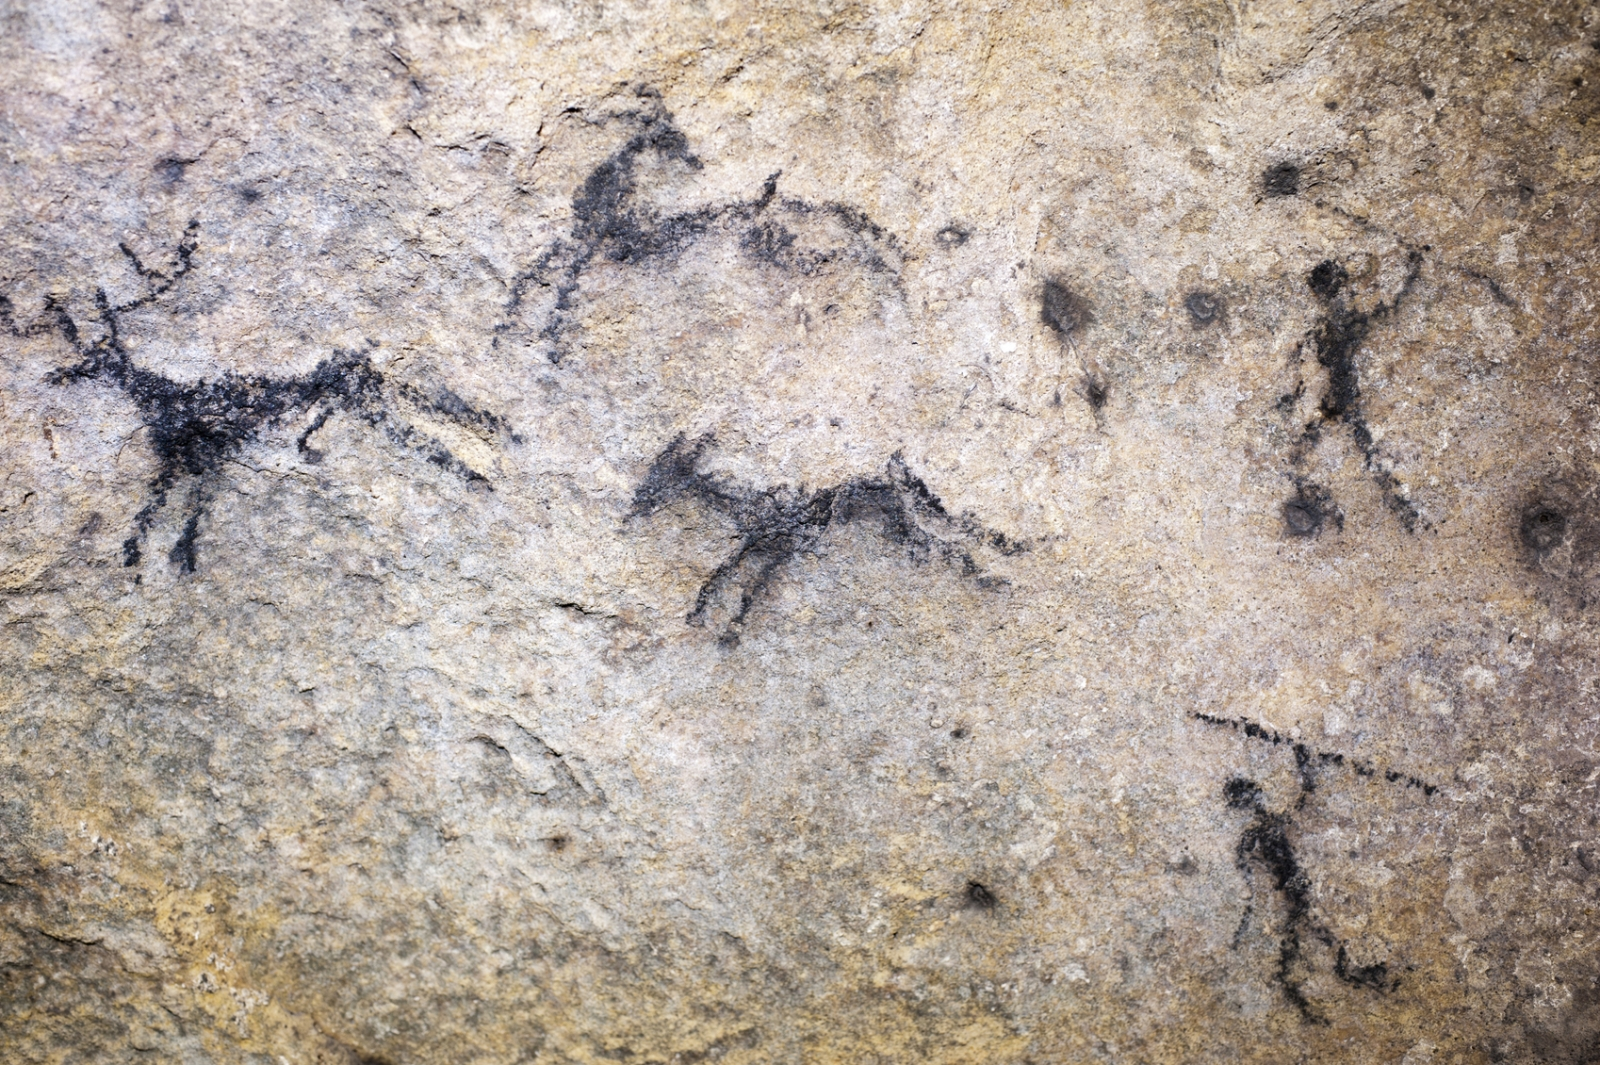 hunter gatherer cave art painting